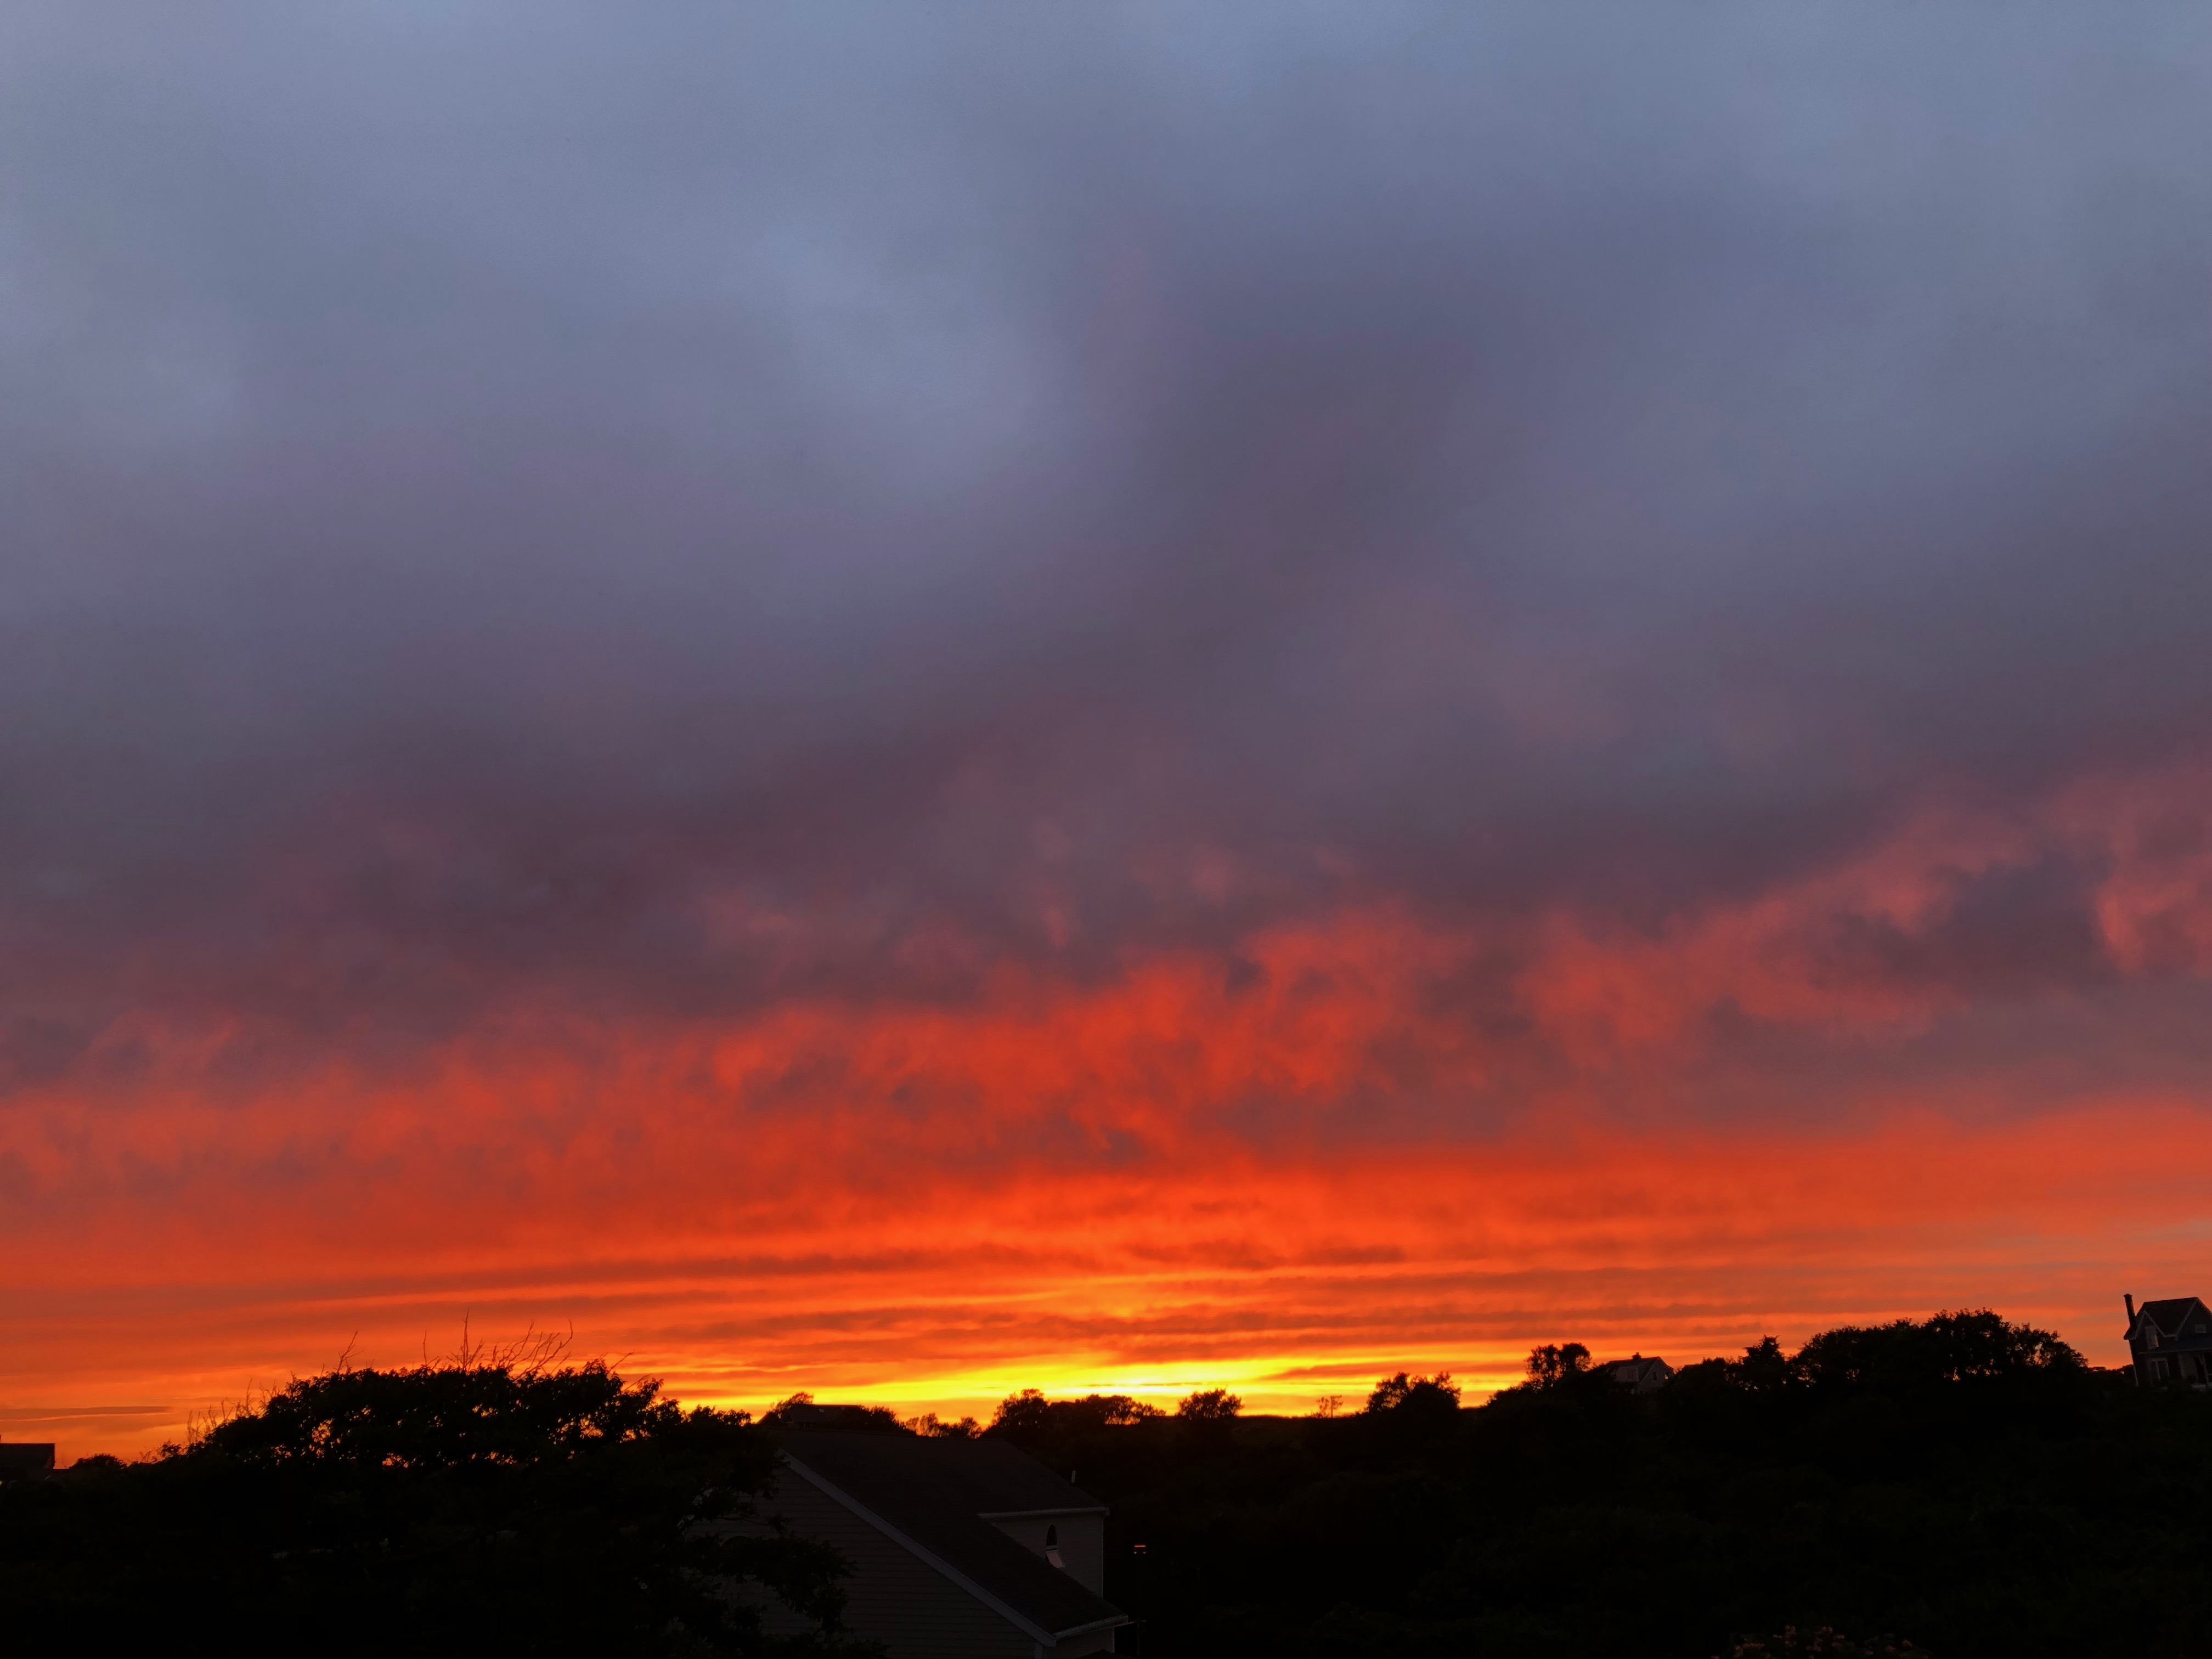 082319-New-Shoreham-flaming-sunset